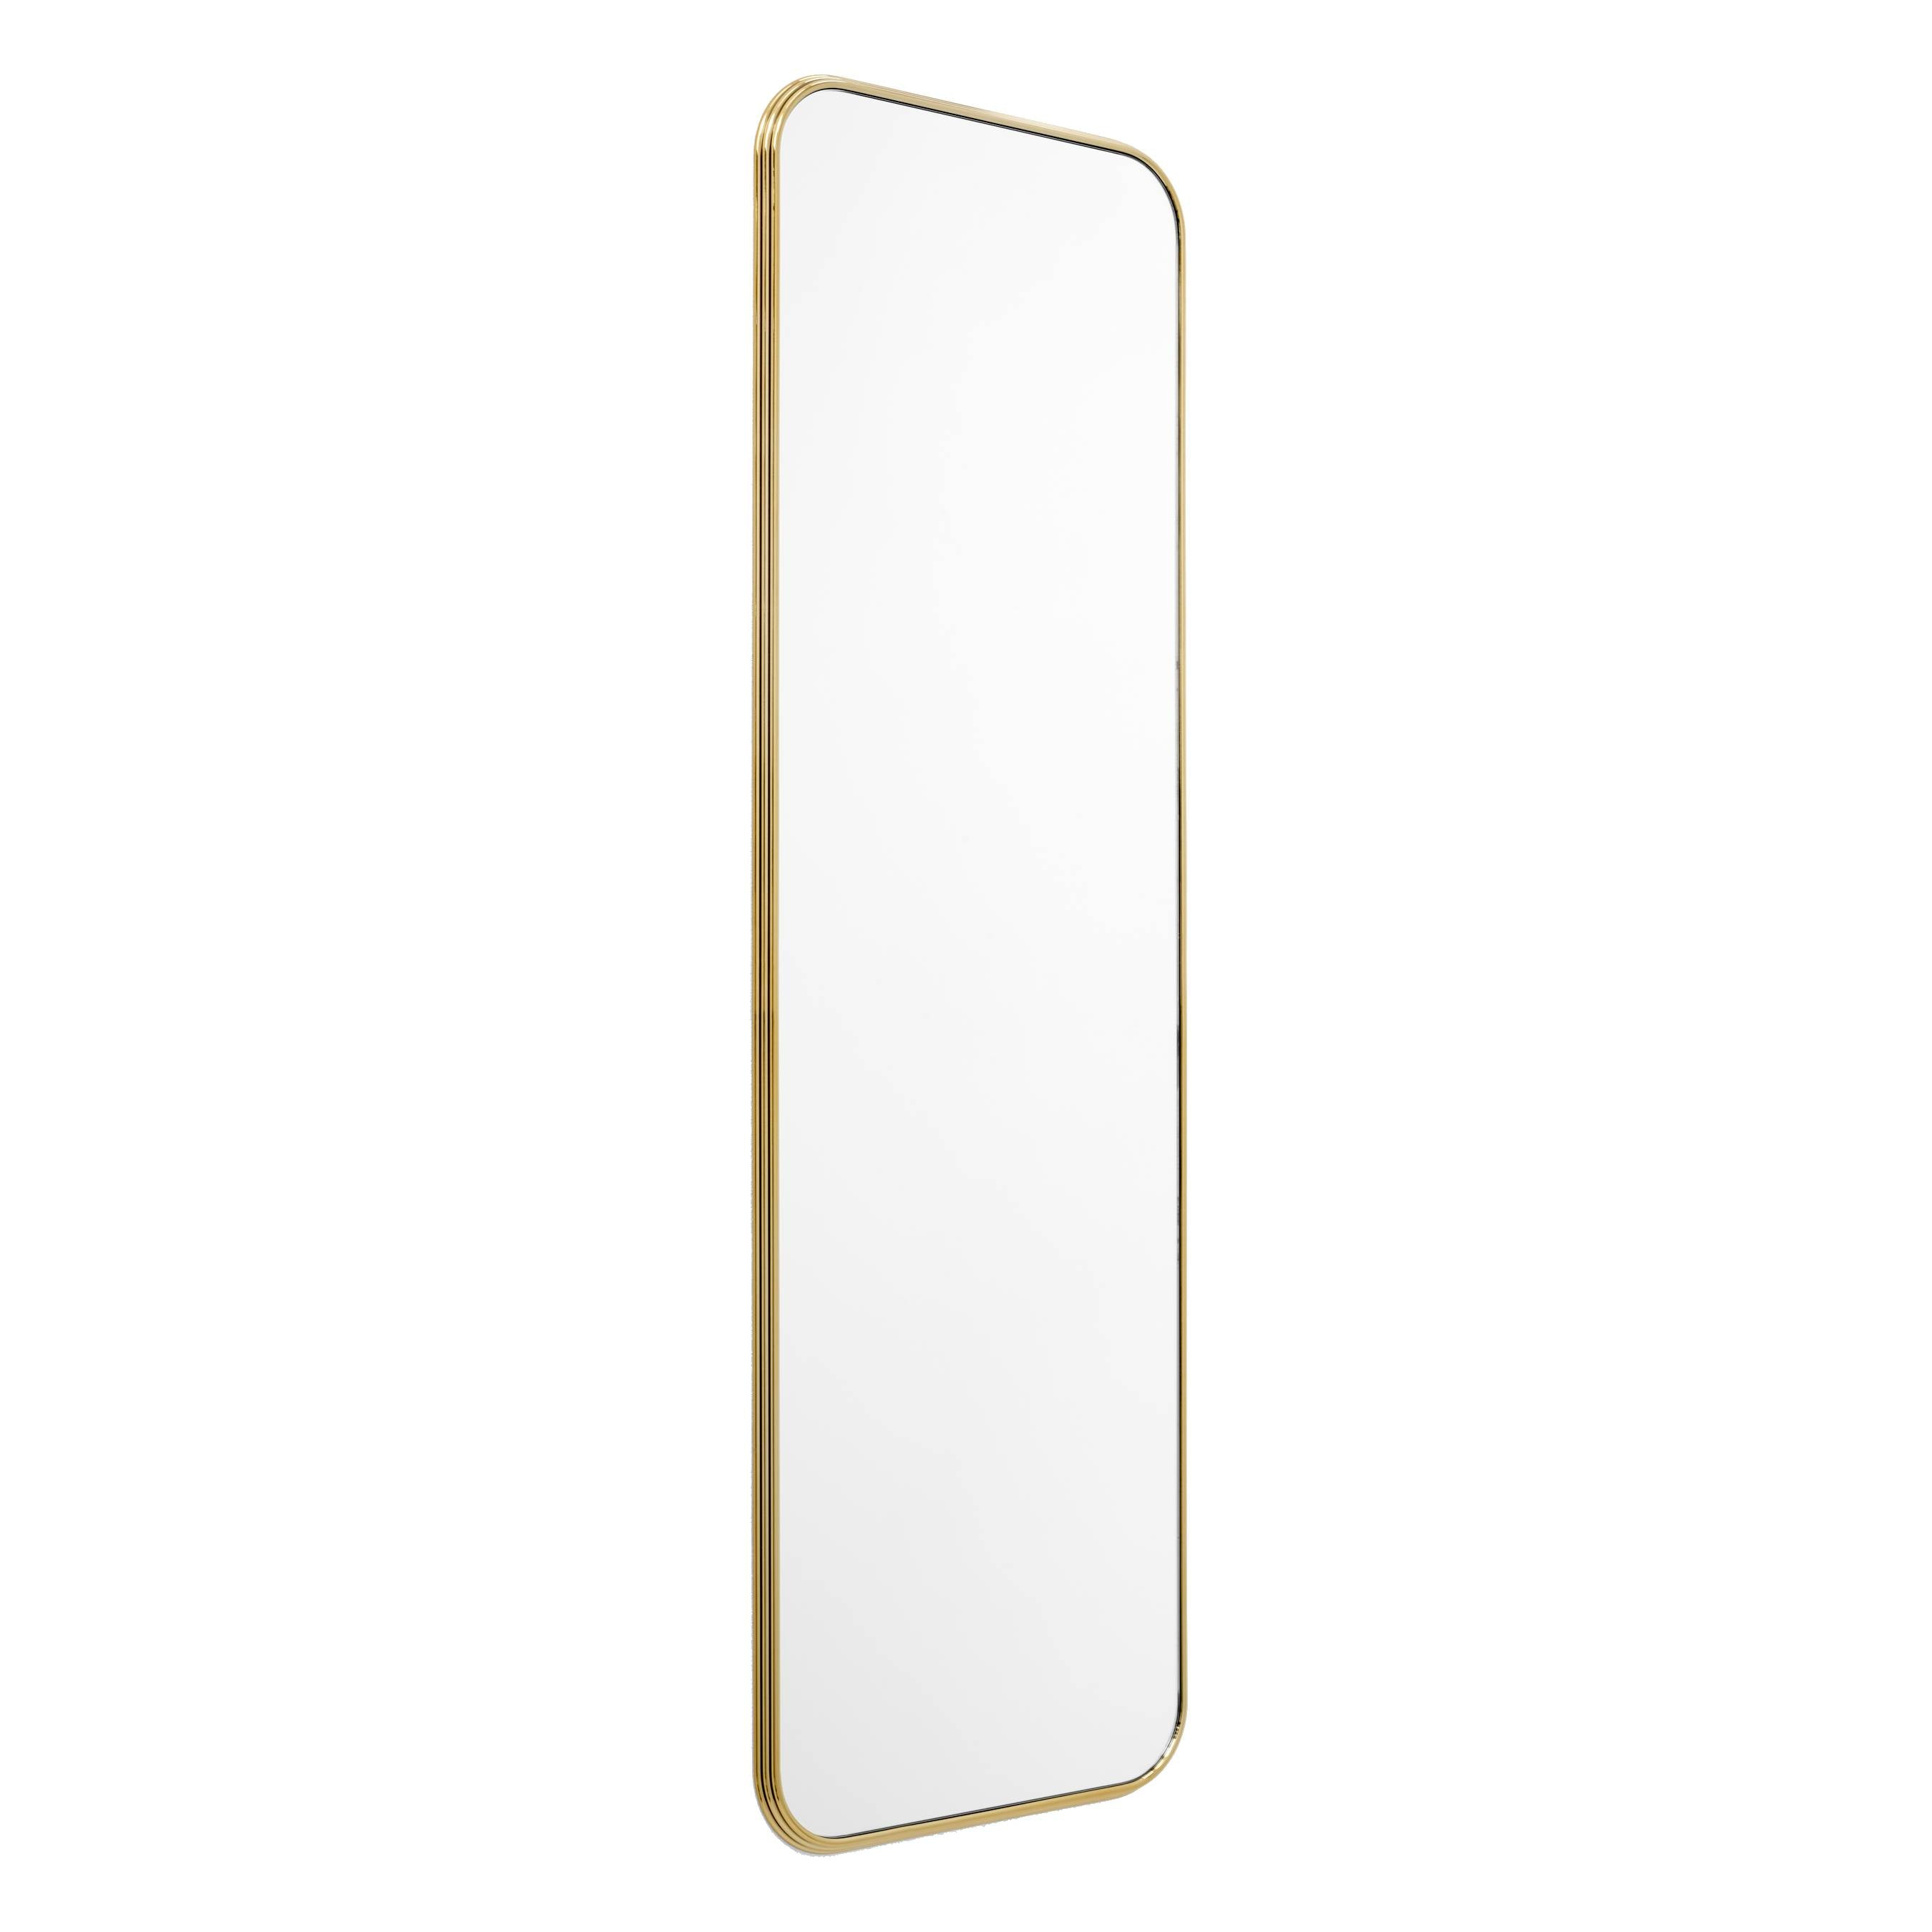 Sillon Mirror SH7: Brass